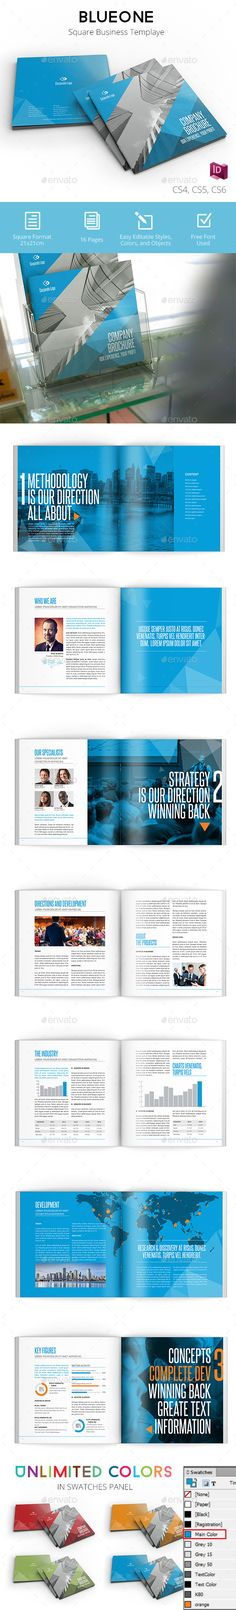 Corporate Business Brochure 16 Pages A4 Templates, Corporate - business report templates